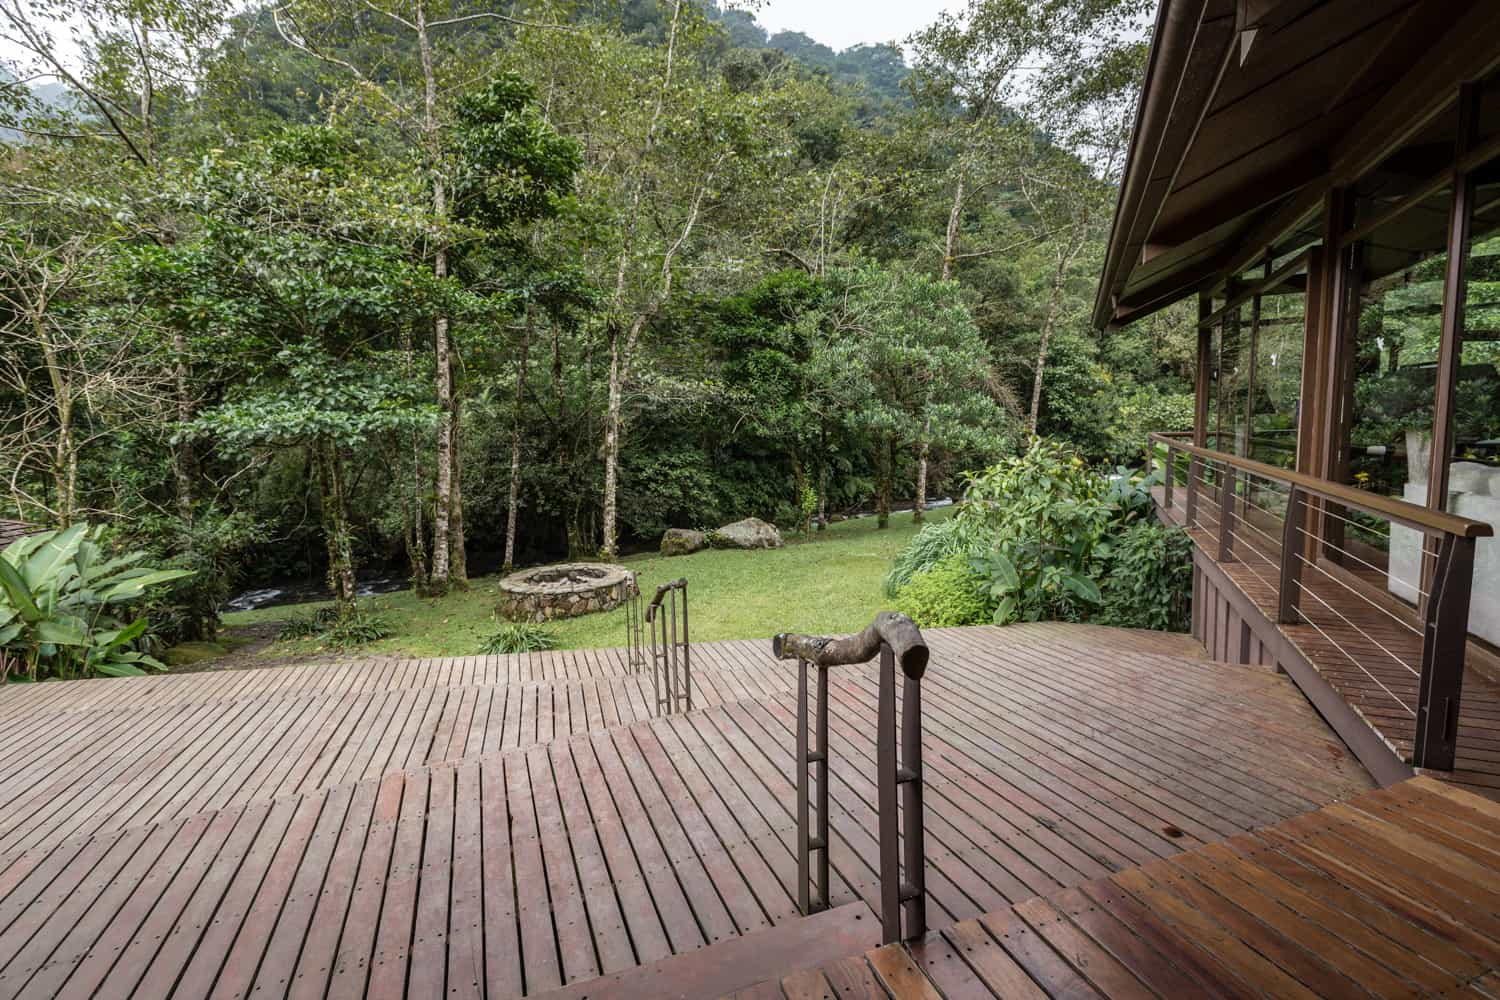 Wedding venue at El Silencio lodge on wood deck with view of cloud forest and river.